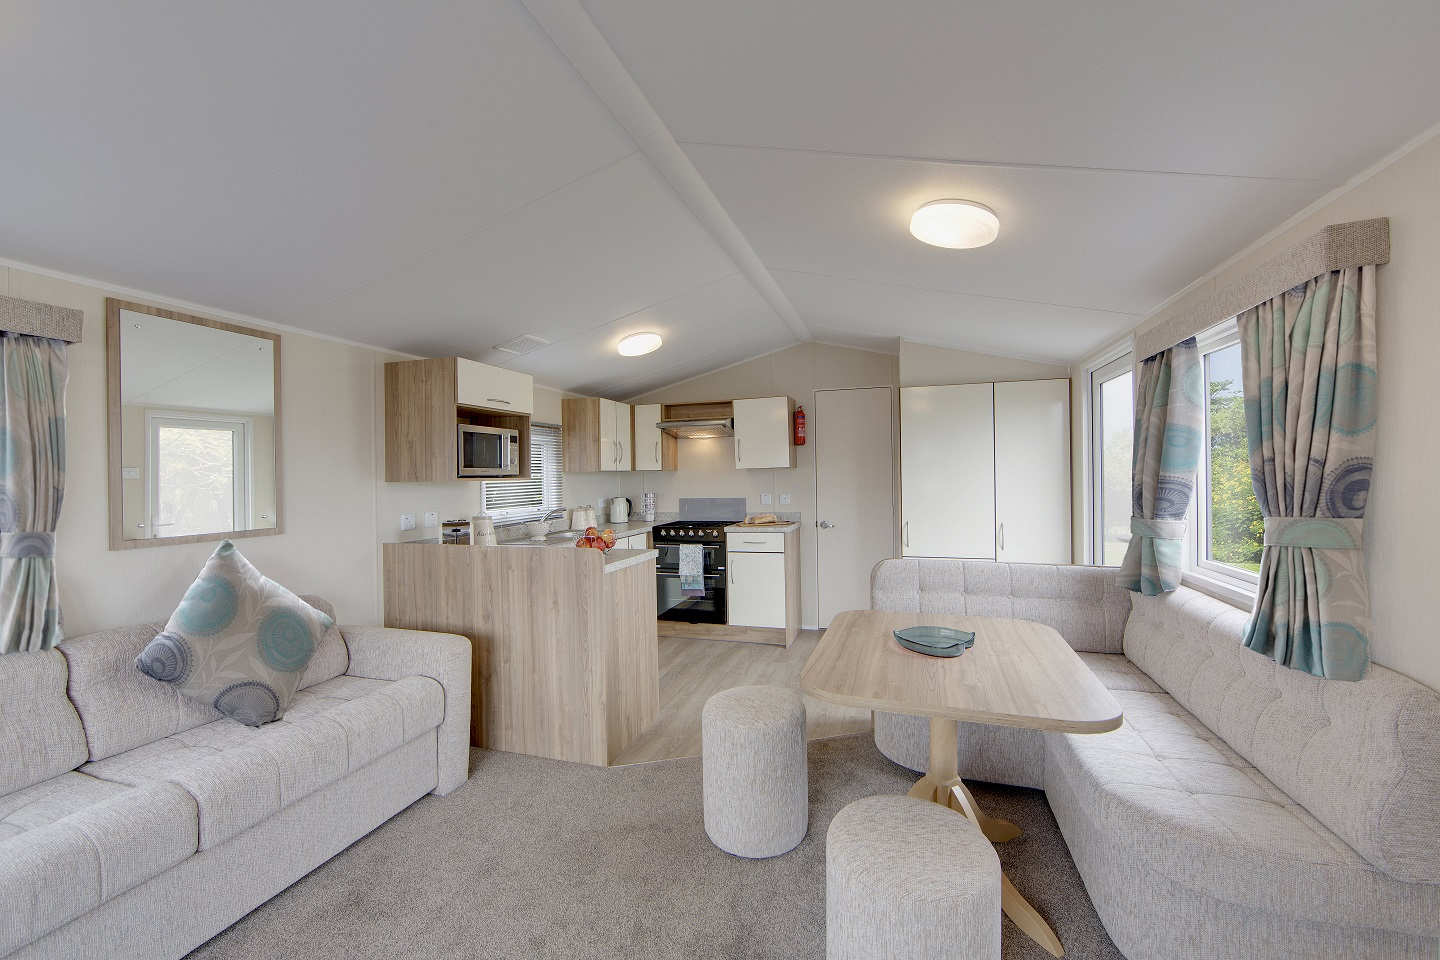 Willerby Rio Gold: Static Caravans and Holiday Homes for Sale on Caravan Parks, Stanhope, Durham and Weardale Large Image 2